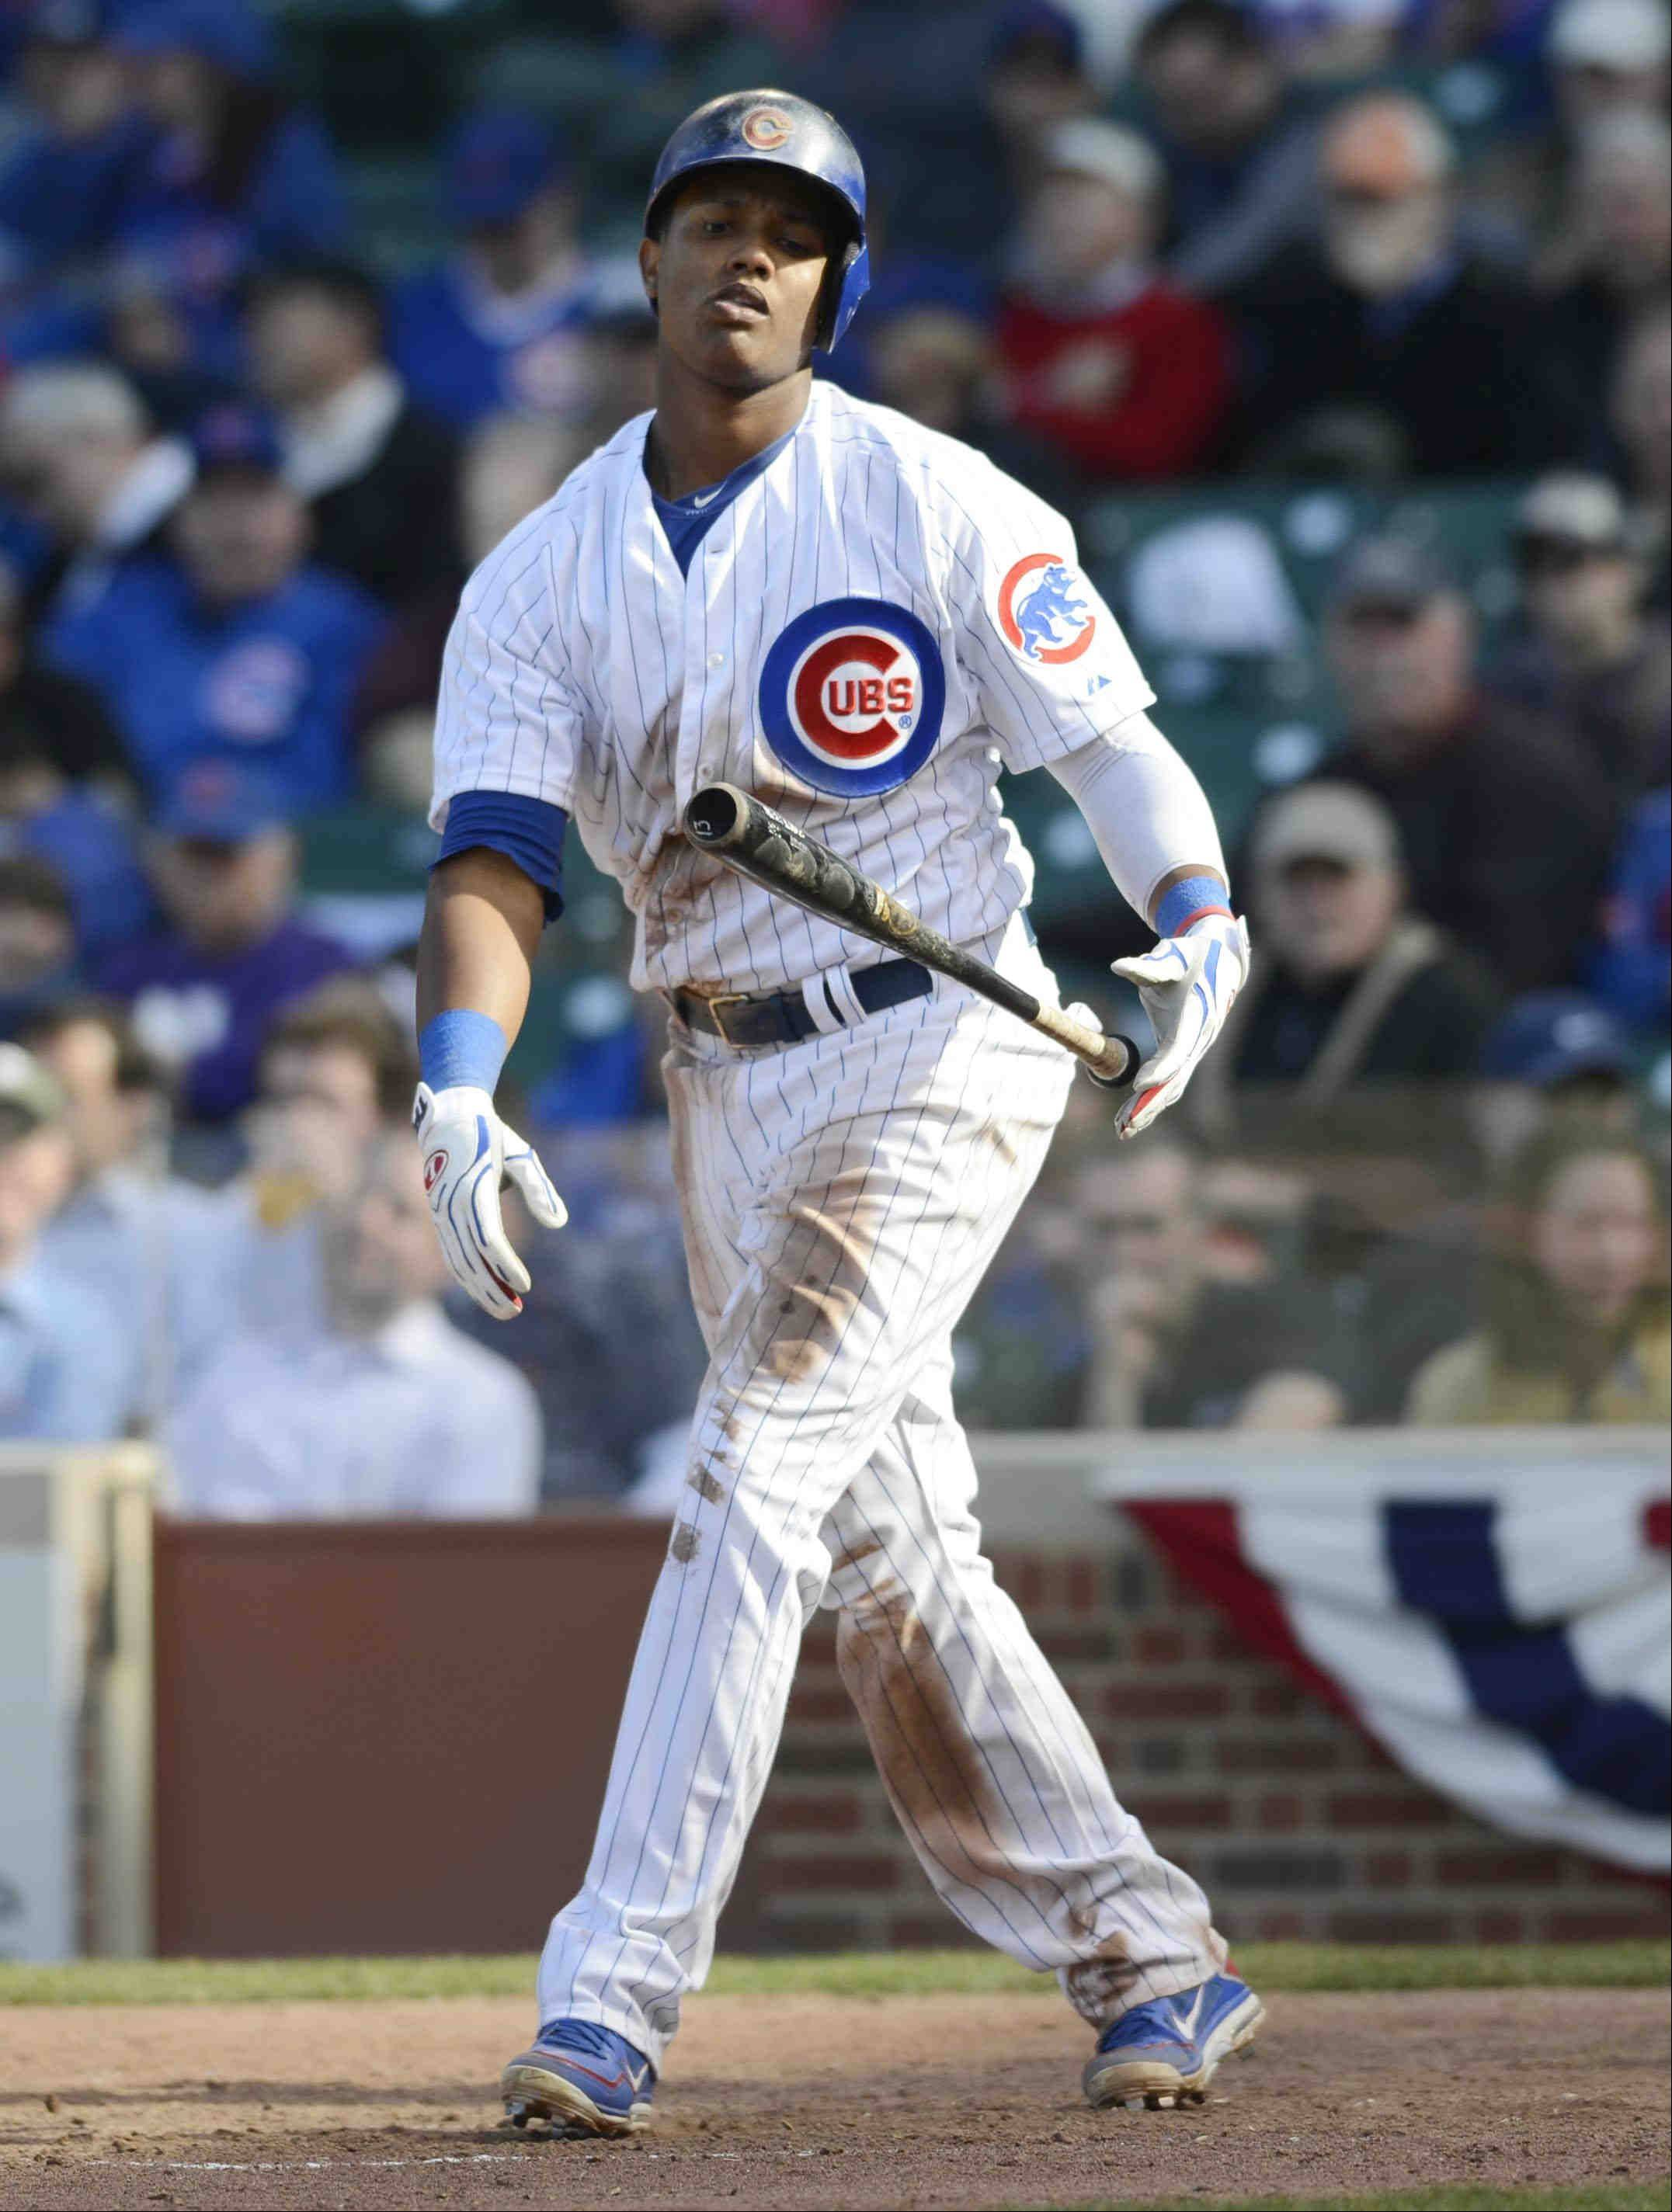 Cubs shortstop Starlin Castro reacts after striking out late in Monday's home opener against the Milwaukee Brewers at Wrigley Field.